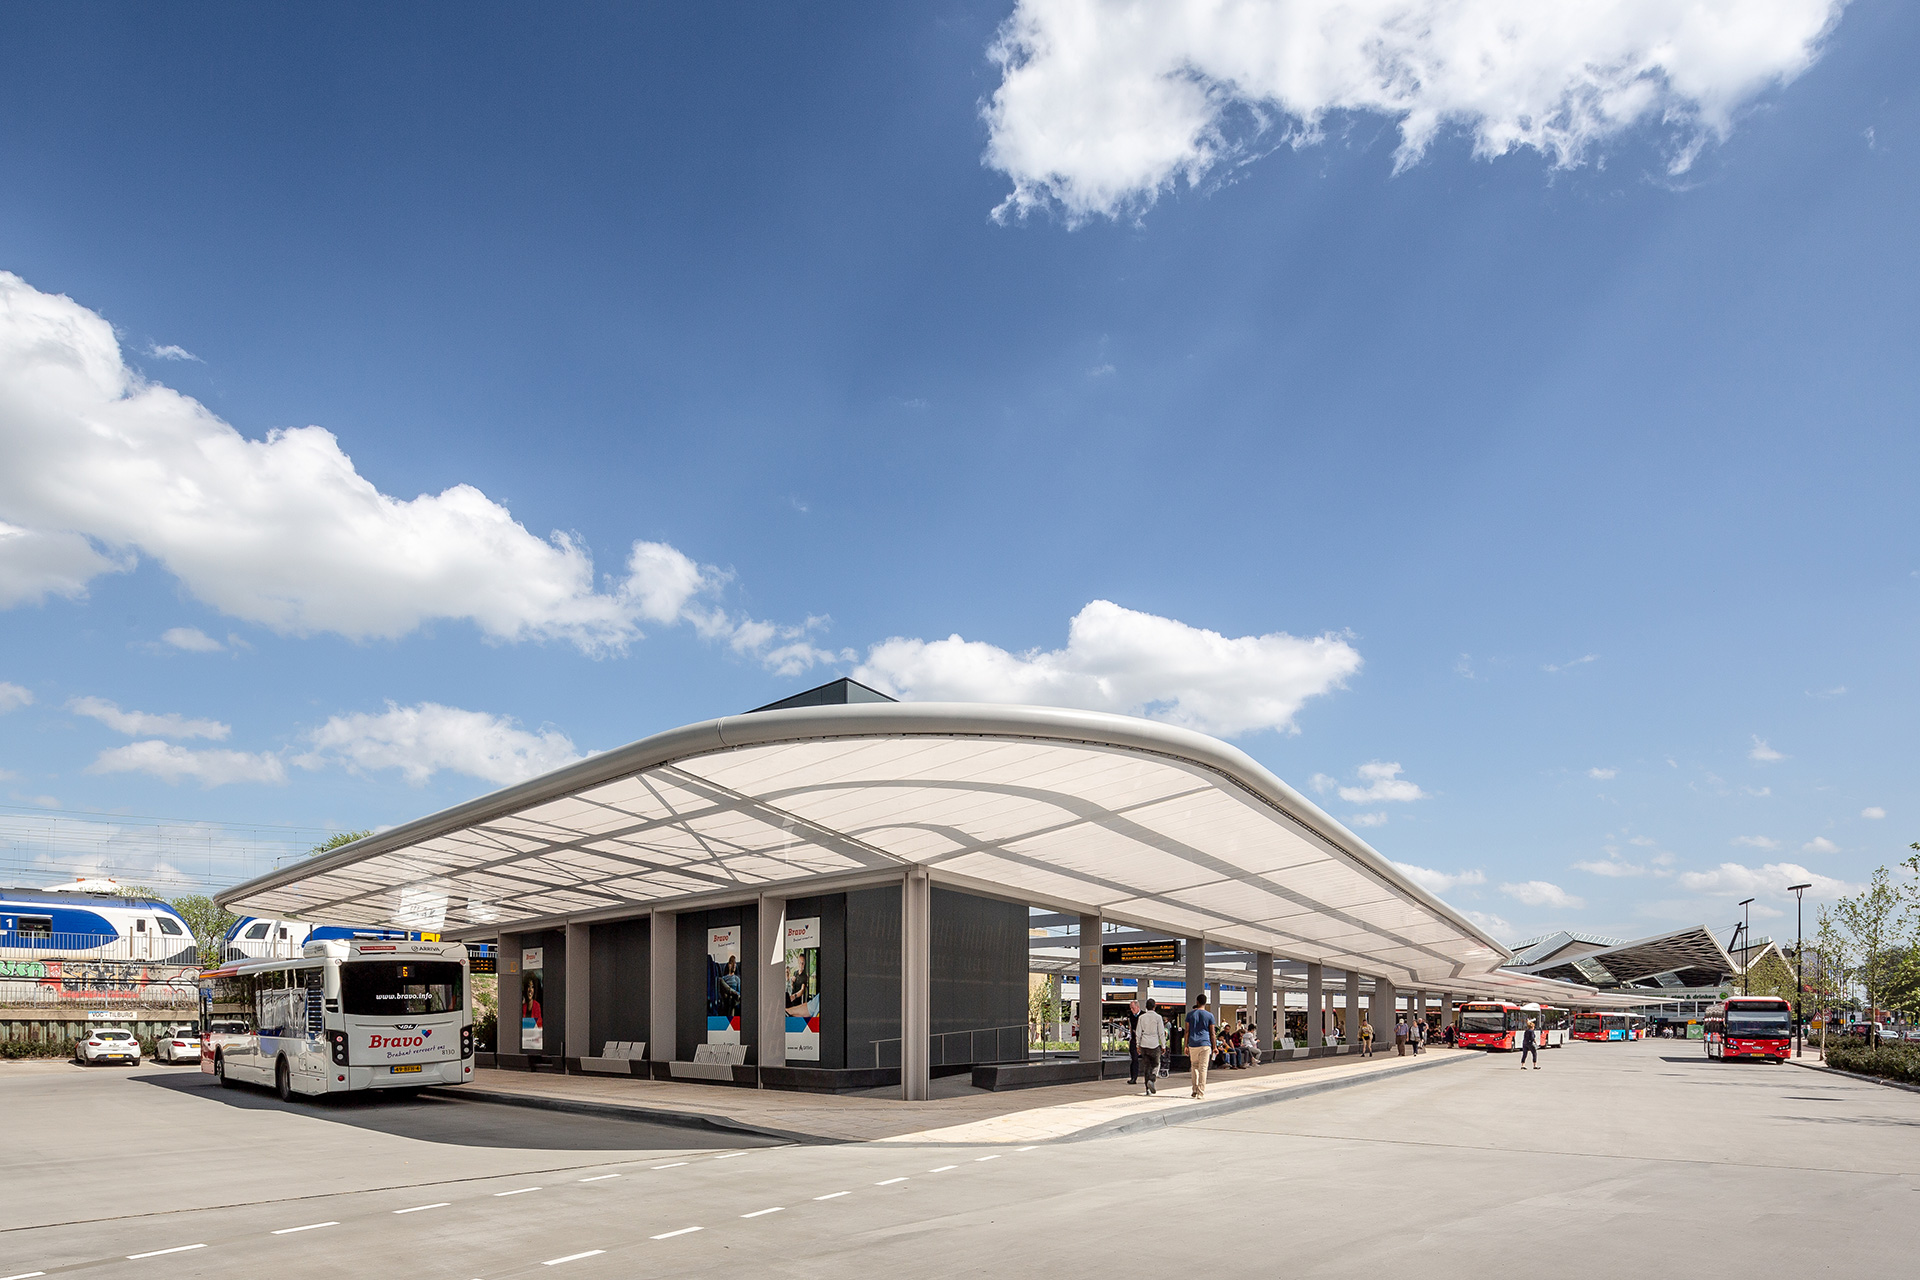 The Tilburg bus station forms a triangular circuit with a length of over 160 metres and open space in the centre| Tilburg Bus Station| Cepezed| STIR